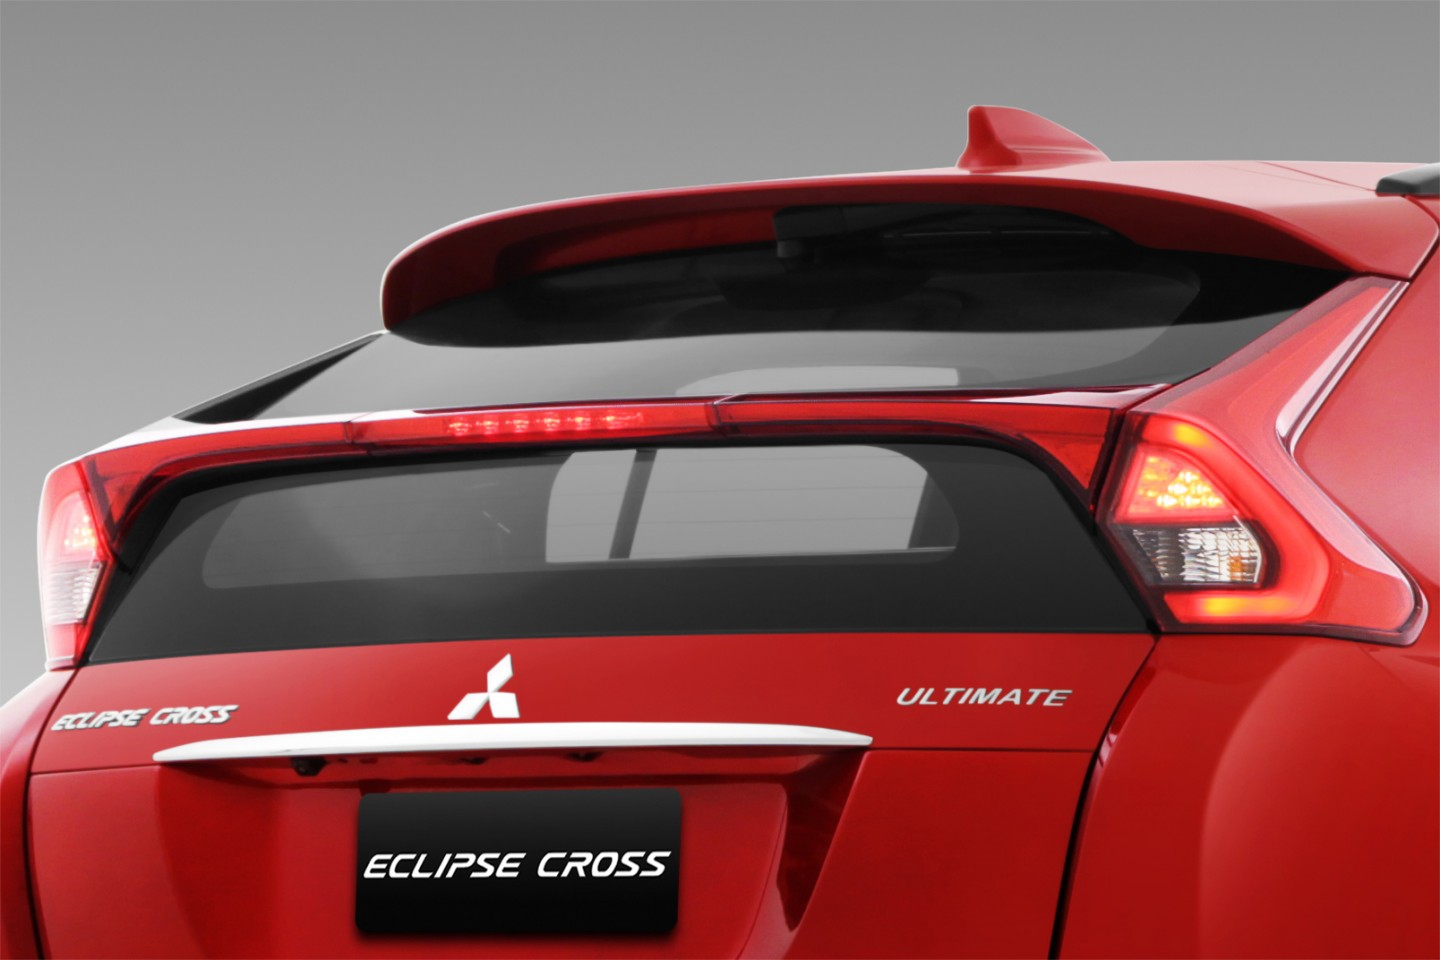 Exterior Car - Rear Luggage Lamp - Eclipse Cross - Mitsubishi Dealer Jakarta - Harga Dealer Resmi Mitsubishi